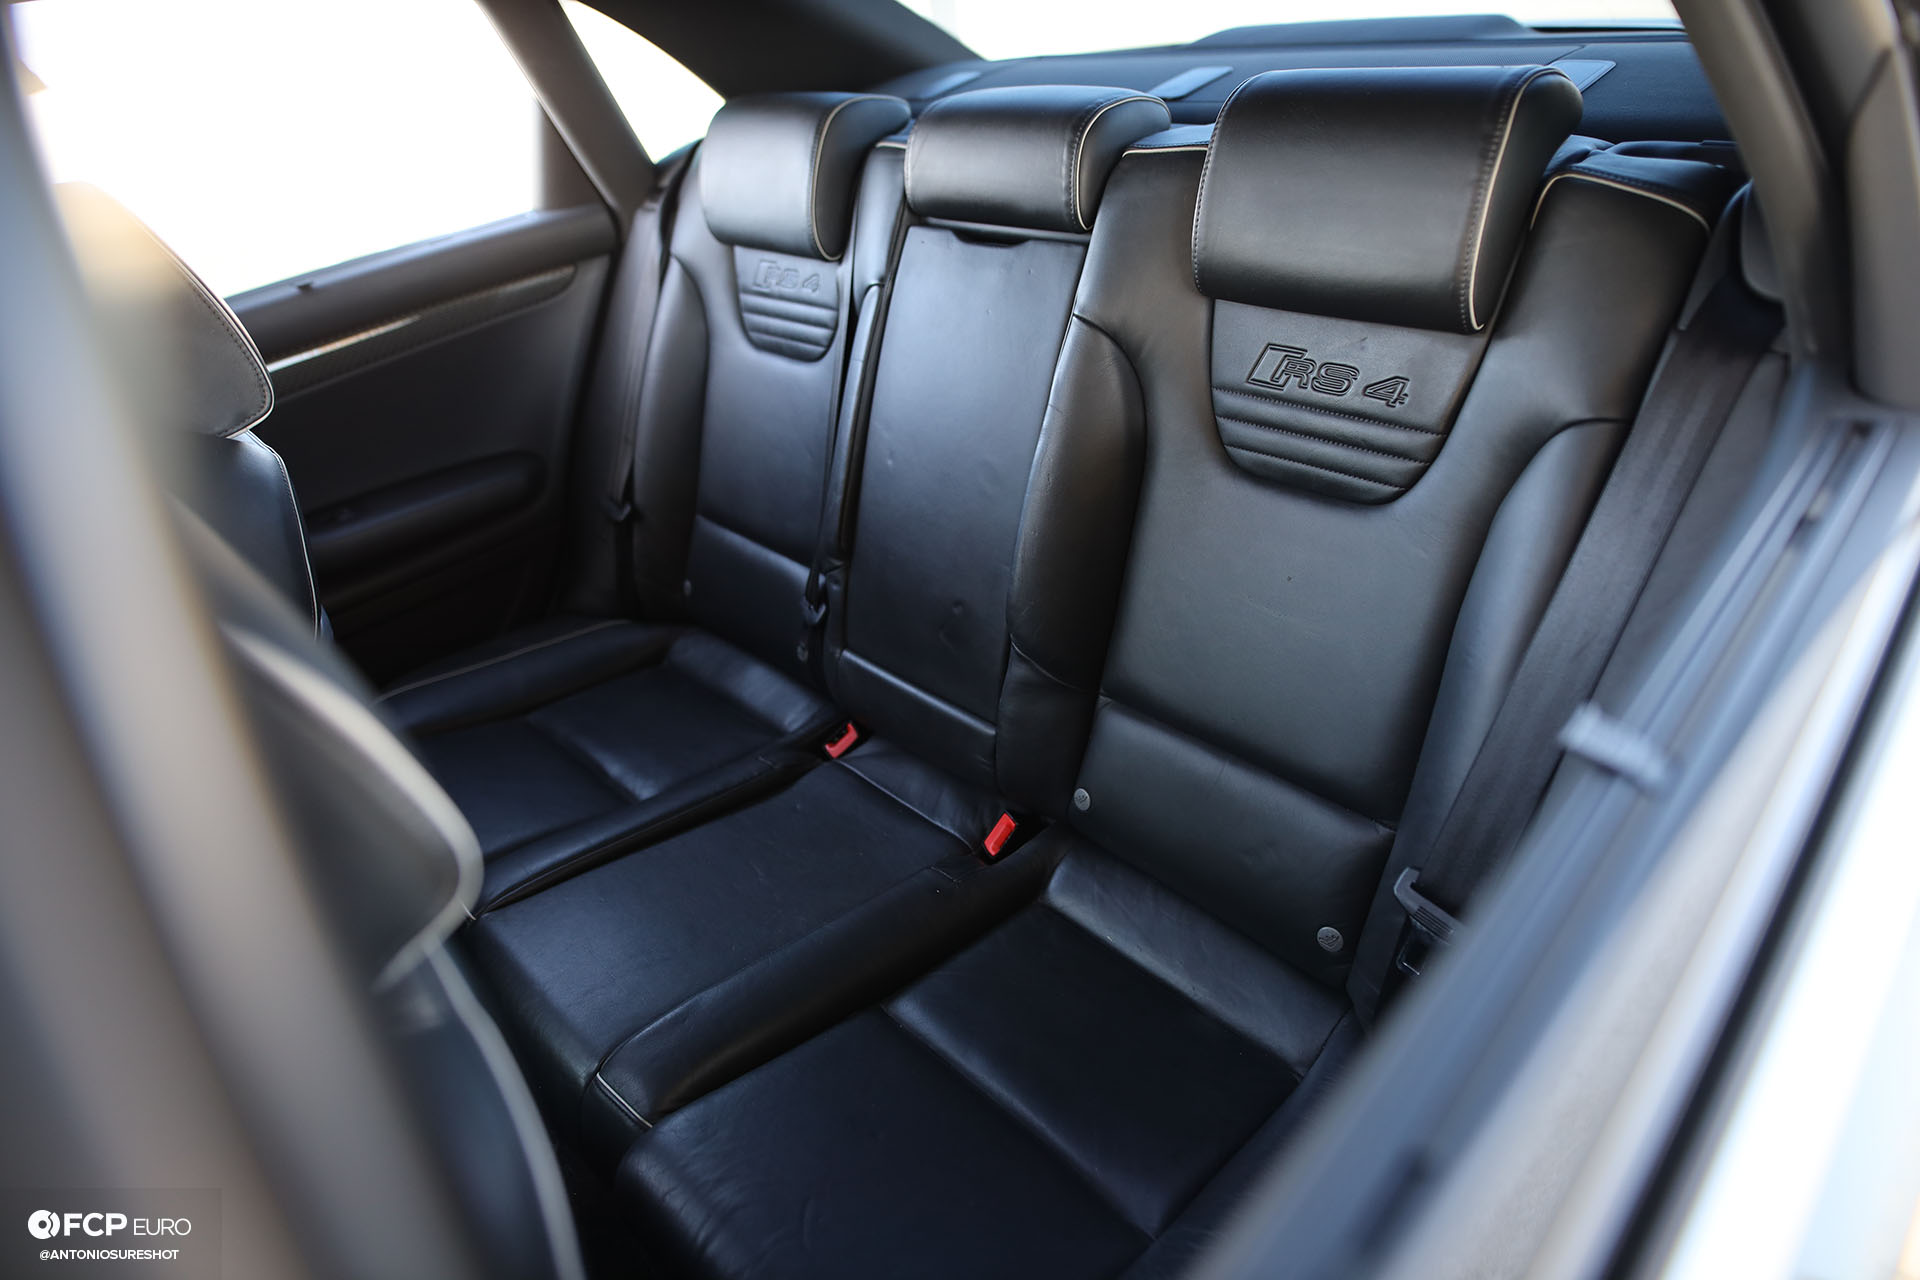 B7 Audi RS4 interior rear seats